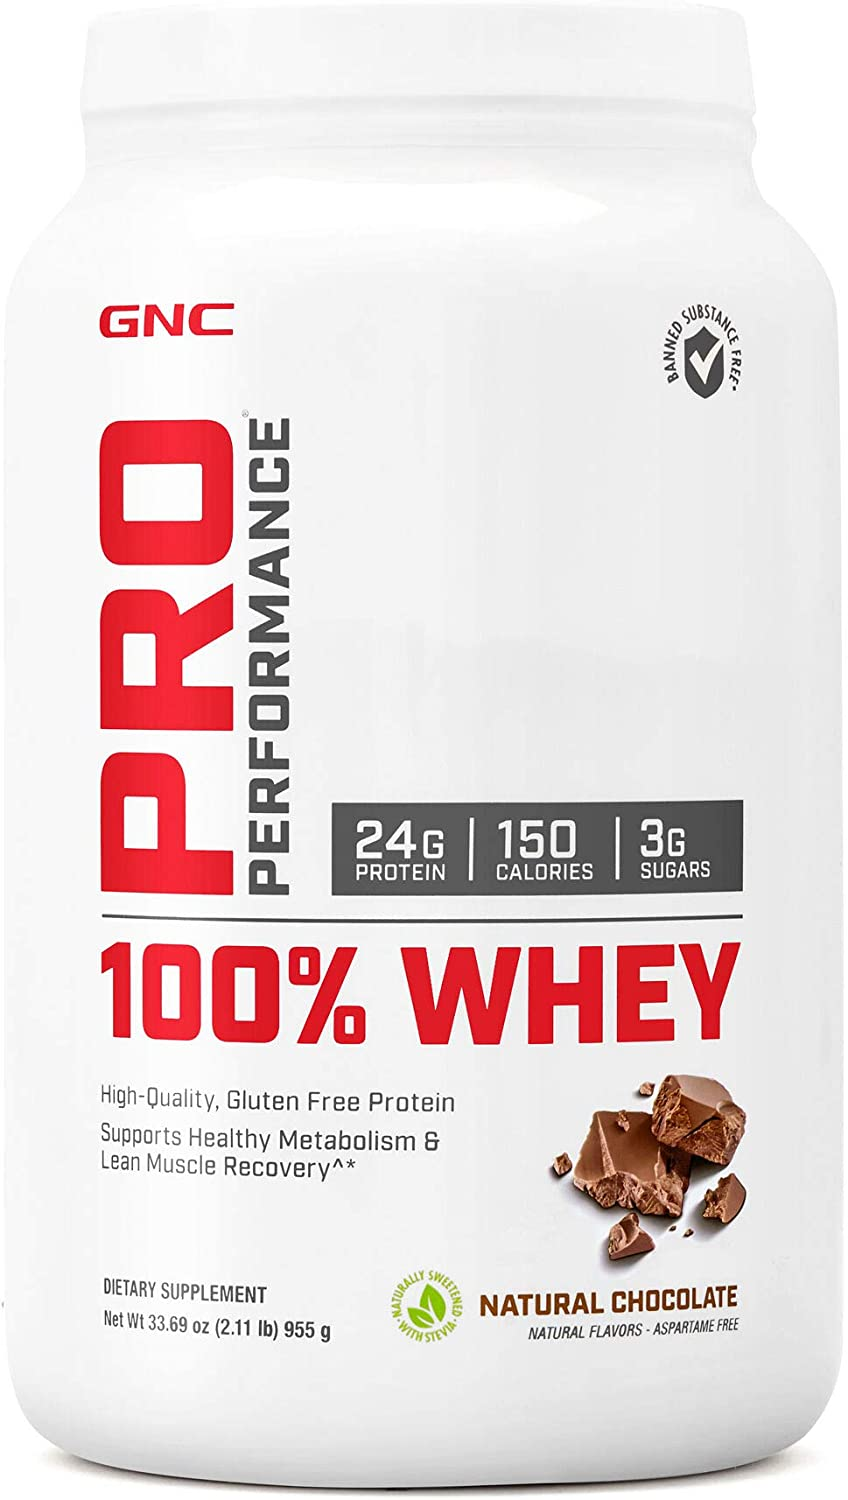 GNC Pro Performance 100% Whey Protein Powder - Natural Chocolate, 25 Servings, Supports Healthy Metabolism and Lean Muscle Recovery